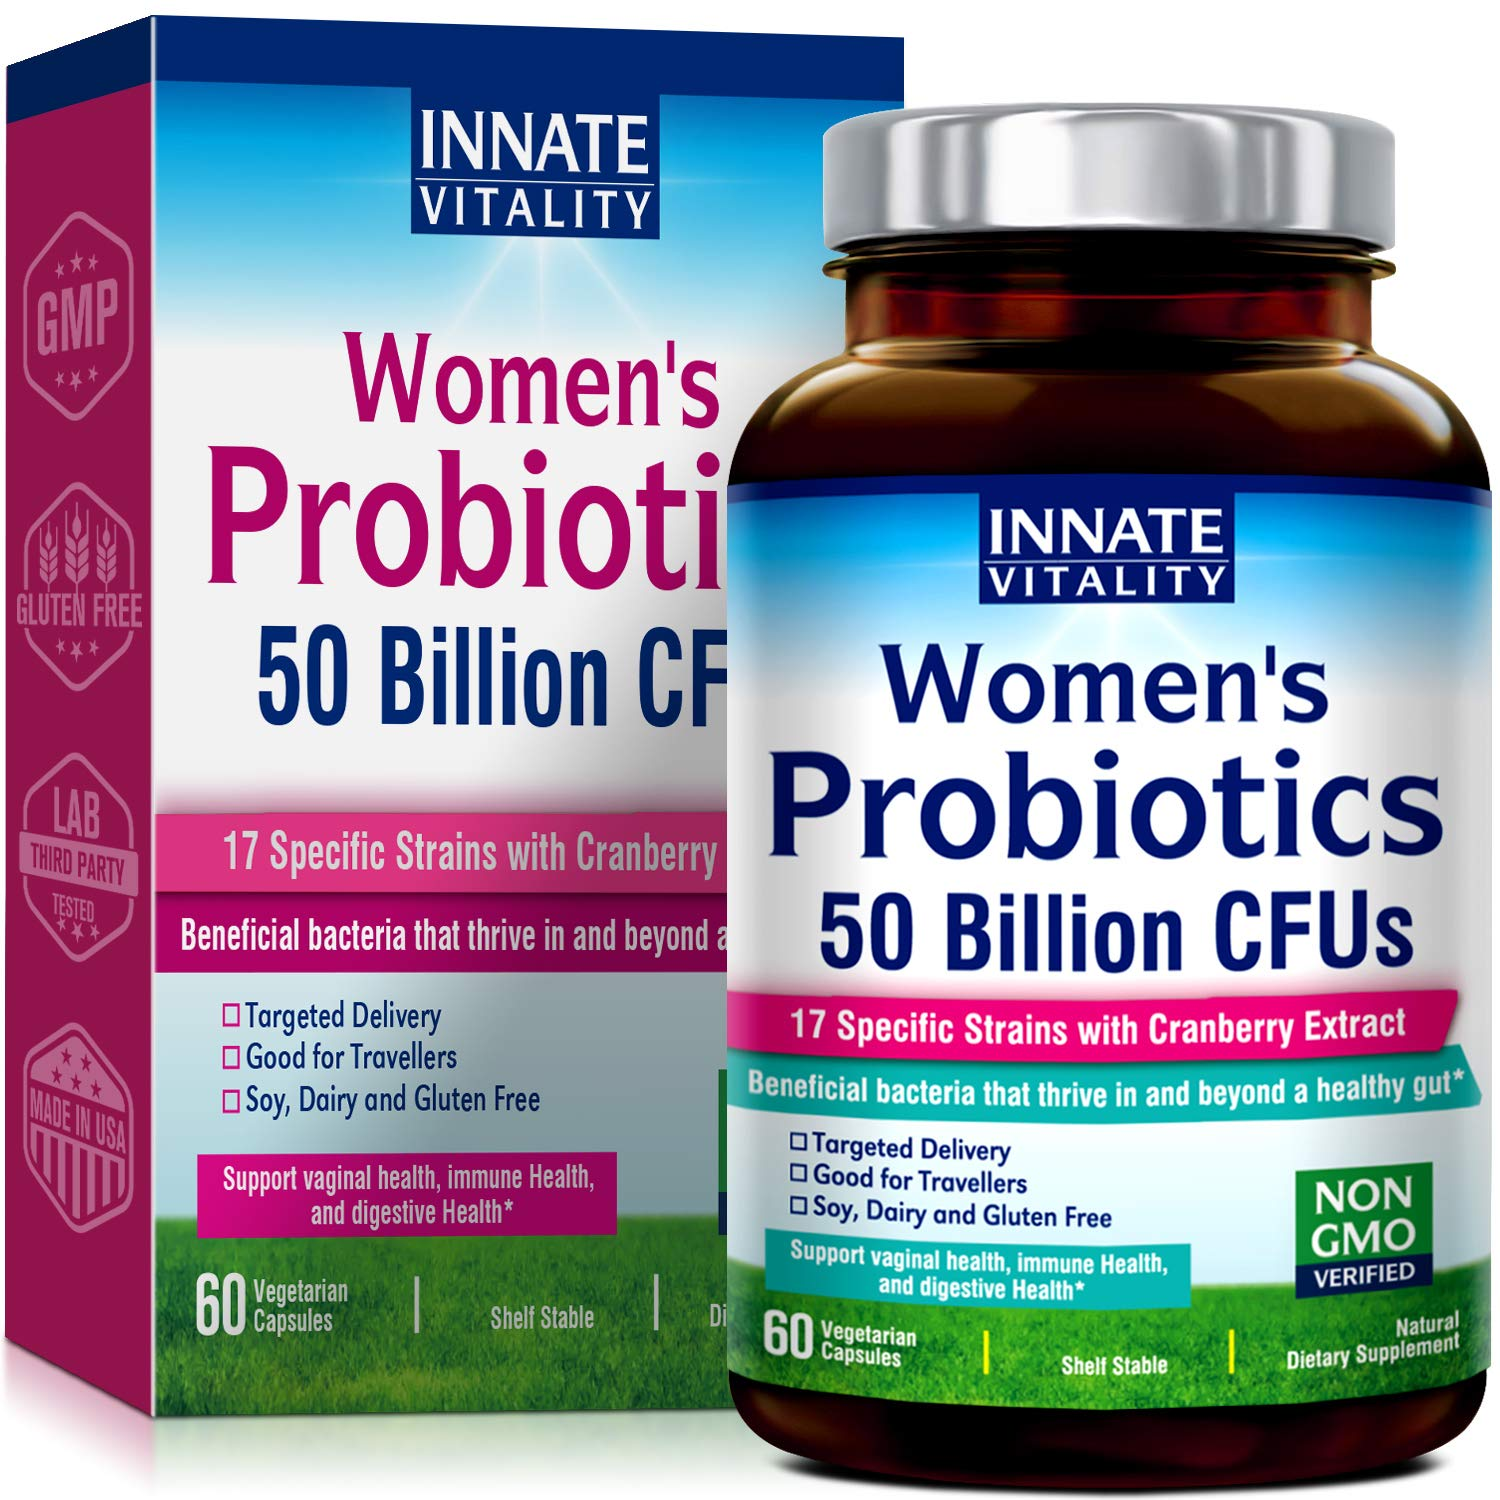 INNATE Vitality Women's Probiotics,50 Billion CFUs,17 Proven Strains, 60 Veggie Caps, Formulated with Prebiotics and Cranberry Extract,Non-GMO, Supports Vaginal, Digestive and Immune Health by Innate Vitality